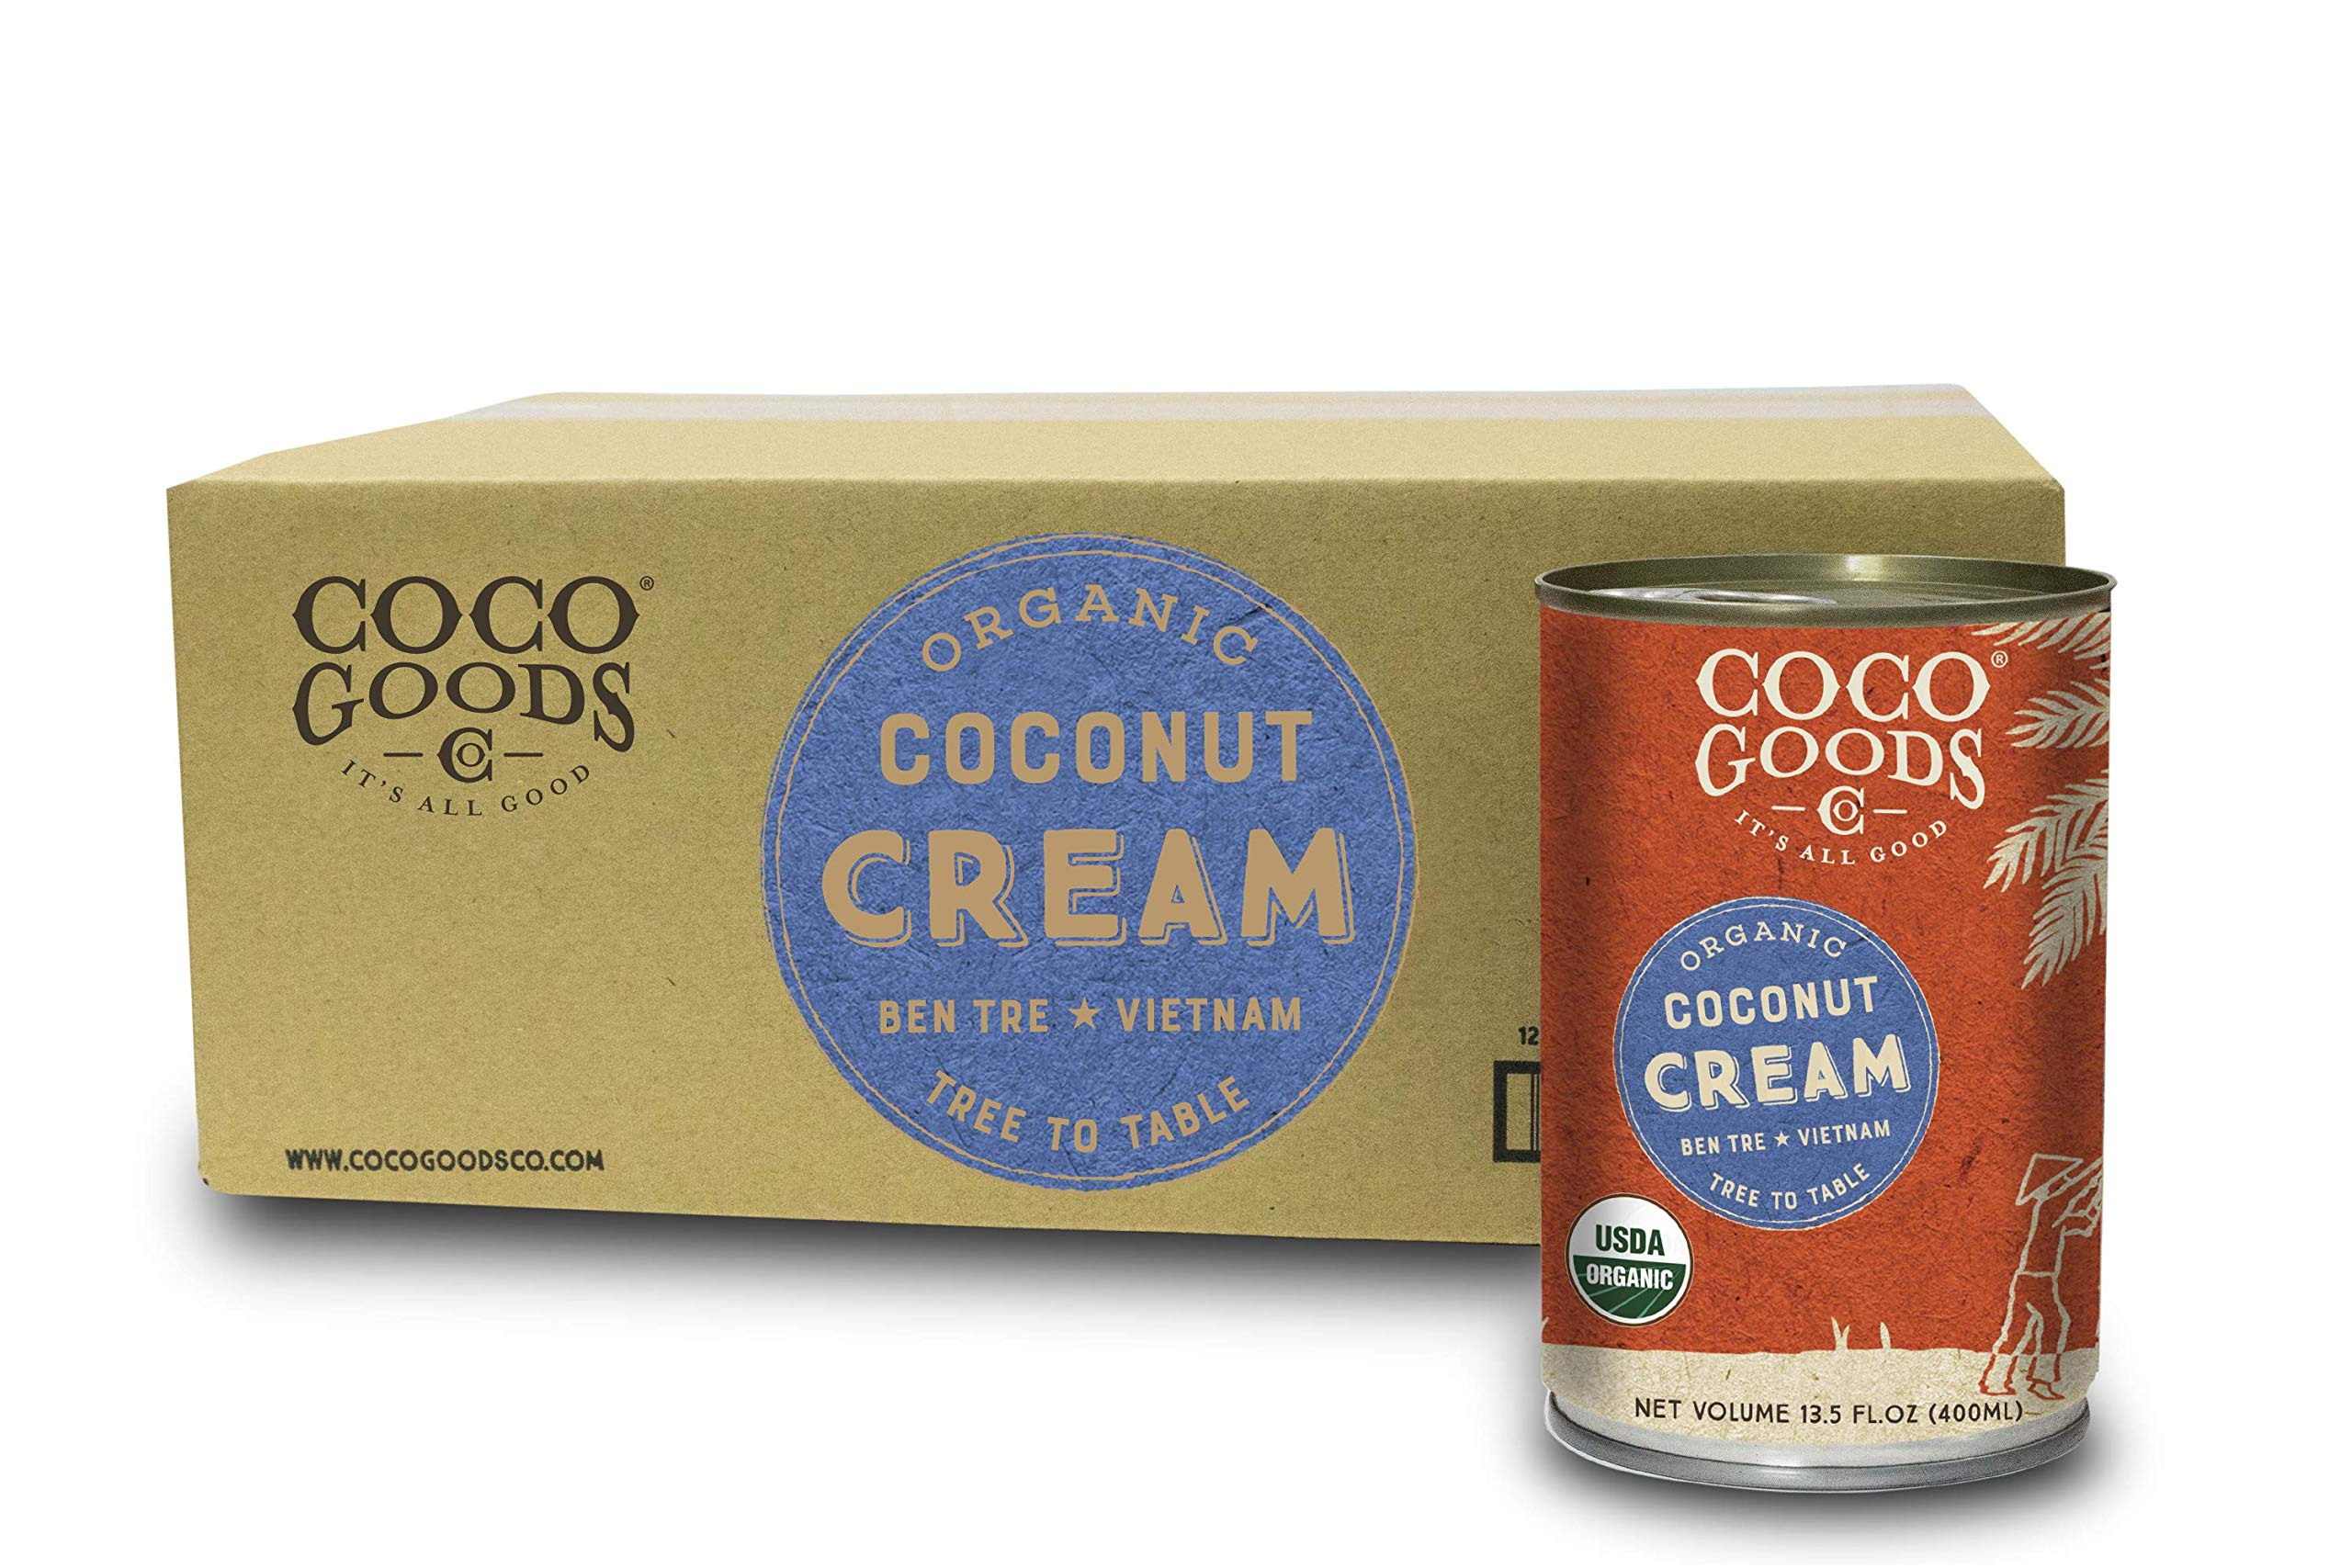 CocoGoods Co. Vietnam Single-Origin Organic Coconut Cream 13.5 oz - Gluten-free, Non-GMO, Vegan, & Dairy-free (Pack of 12) by COCOGOODSCO (Image #7)